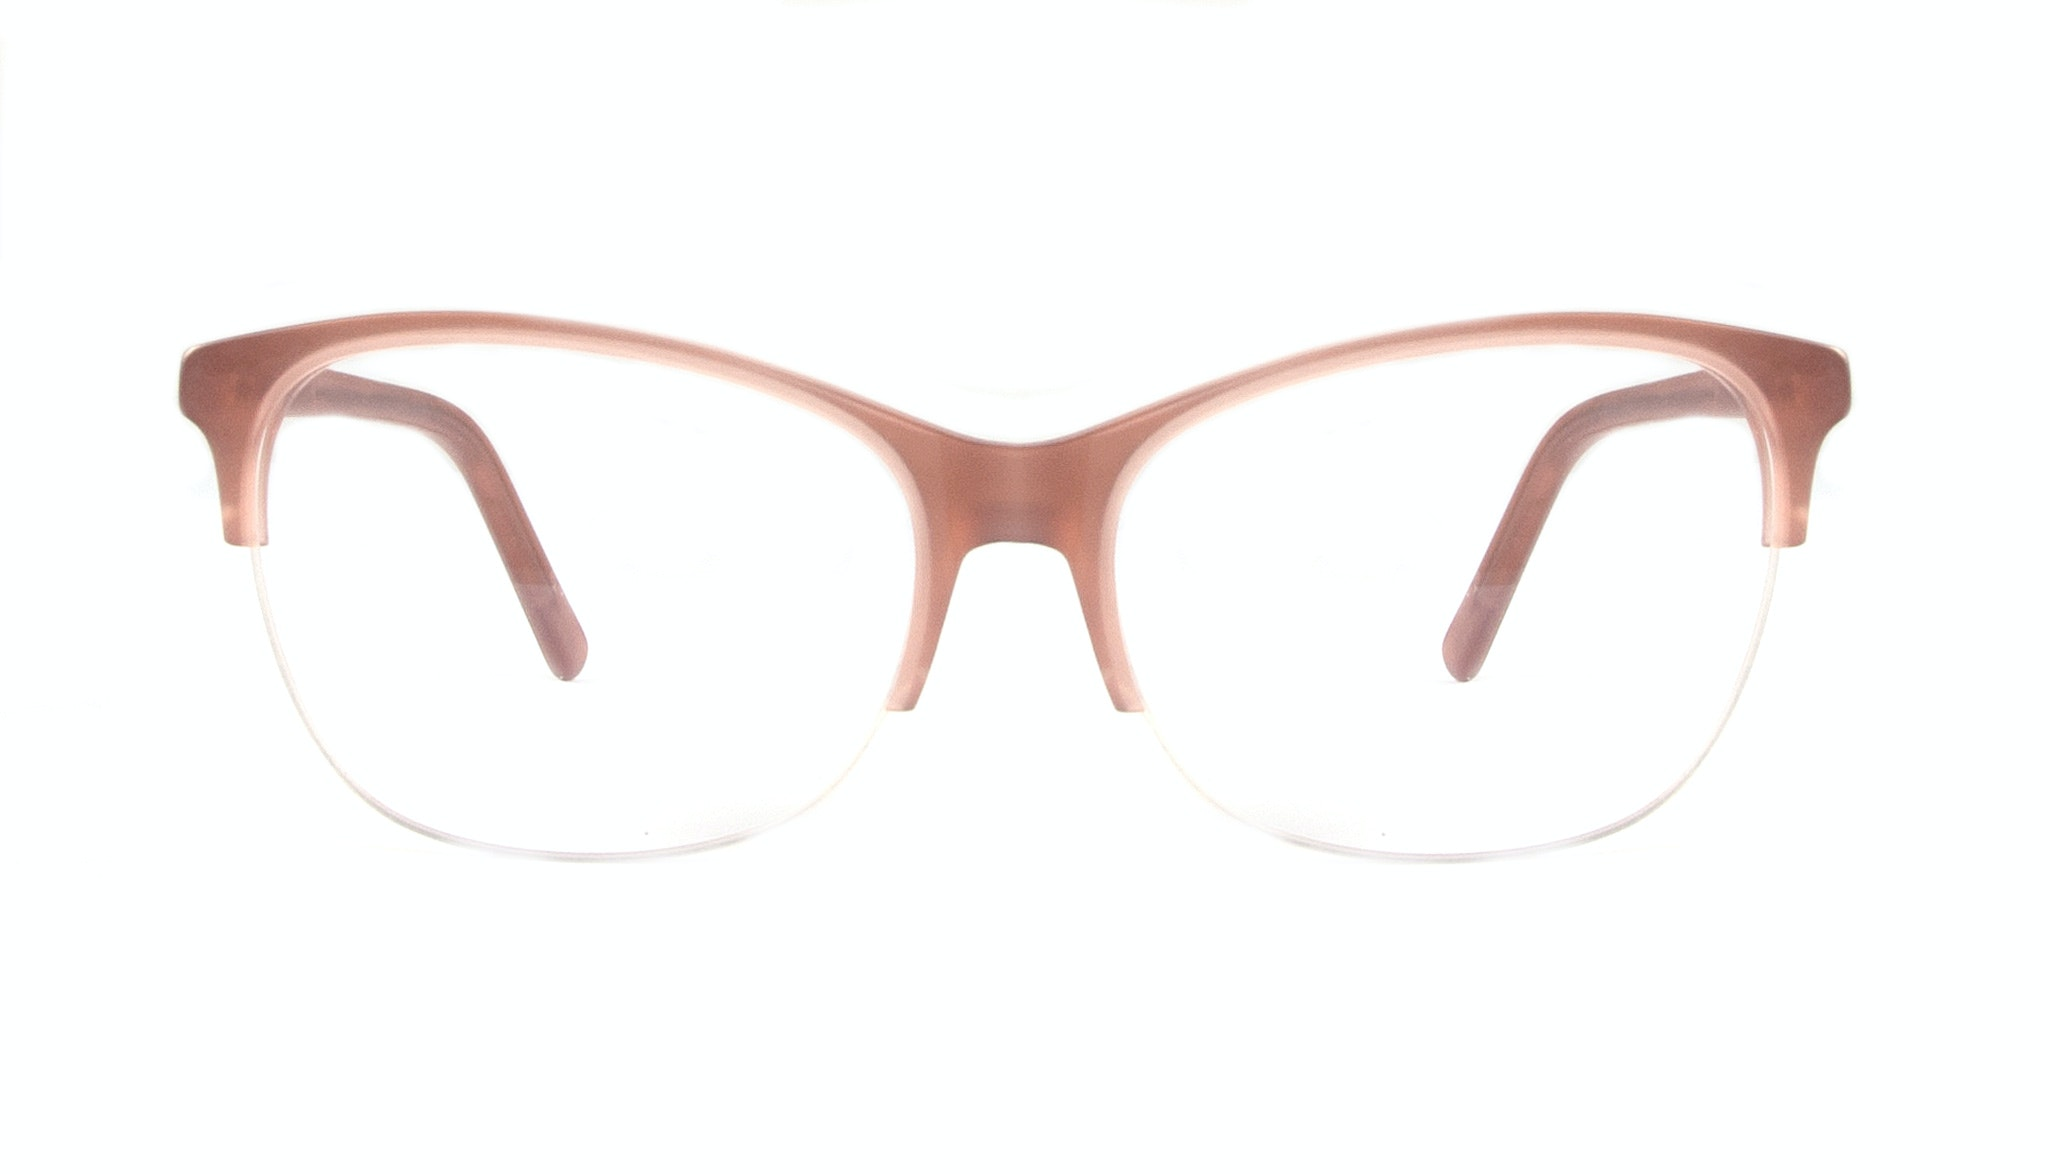 Affordable Fashion Glasses Cat Eye Rectangle Semi-Rimless Eyeglasses Women Flair Light Old Rose Front